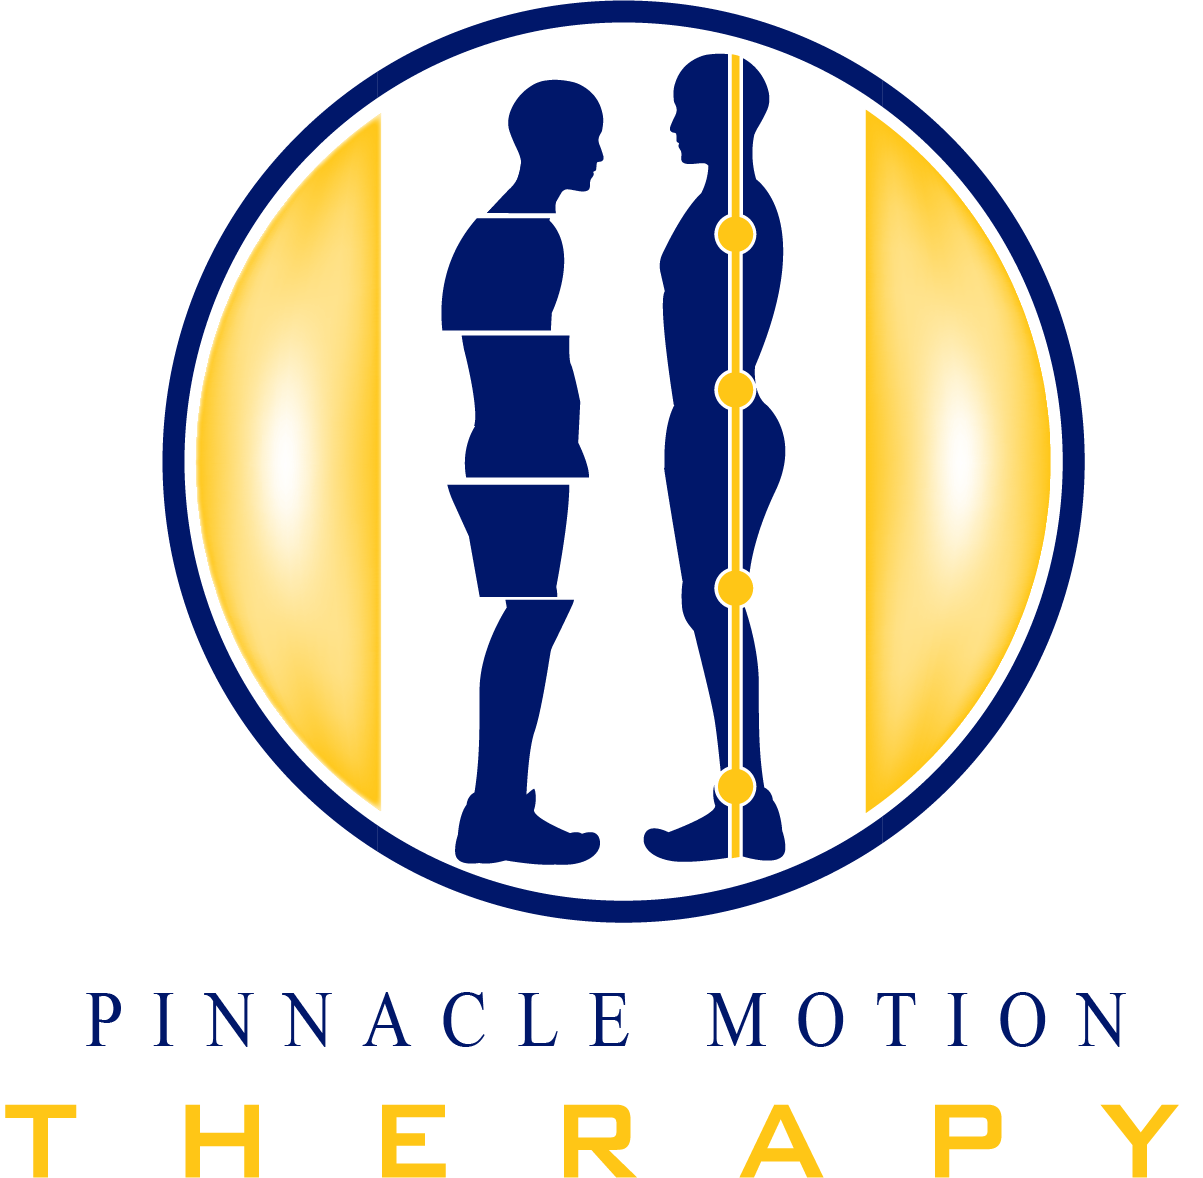 Pinnacle Motion Therapy